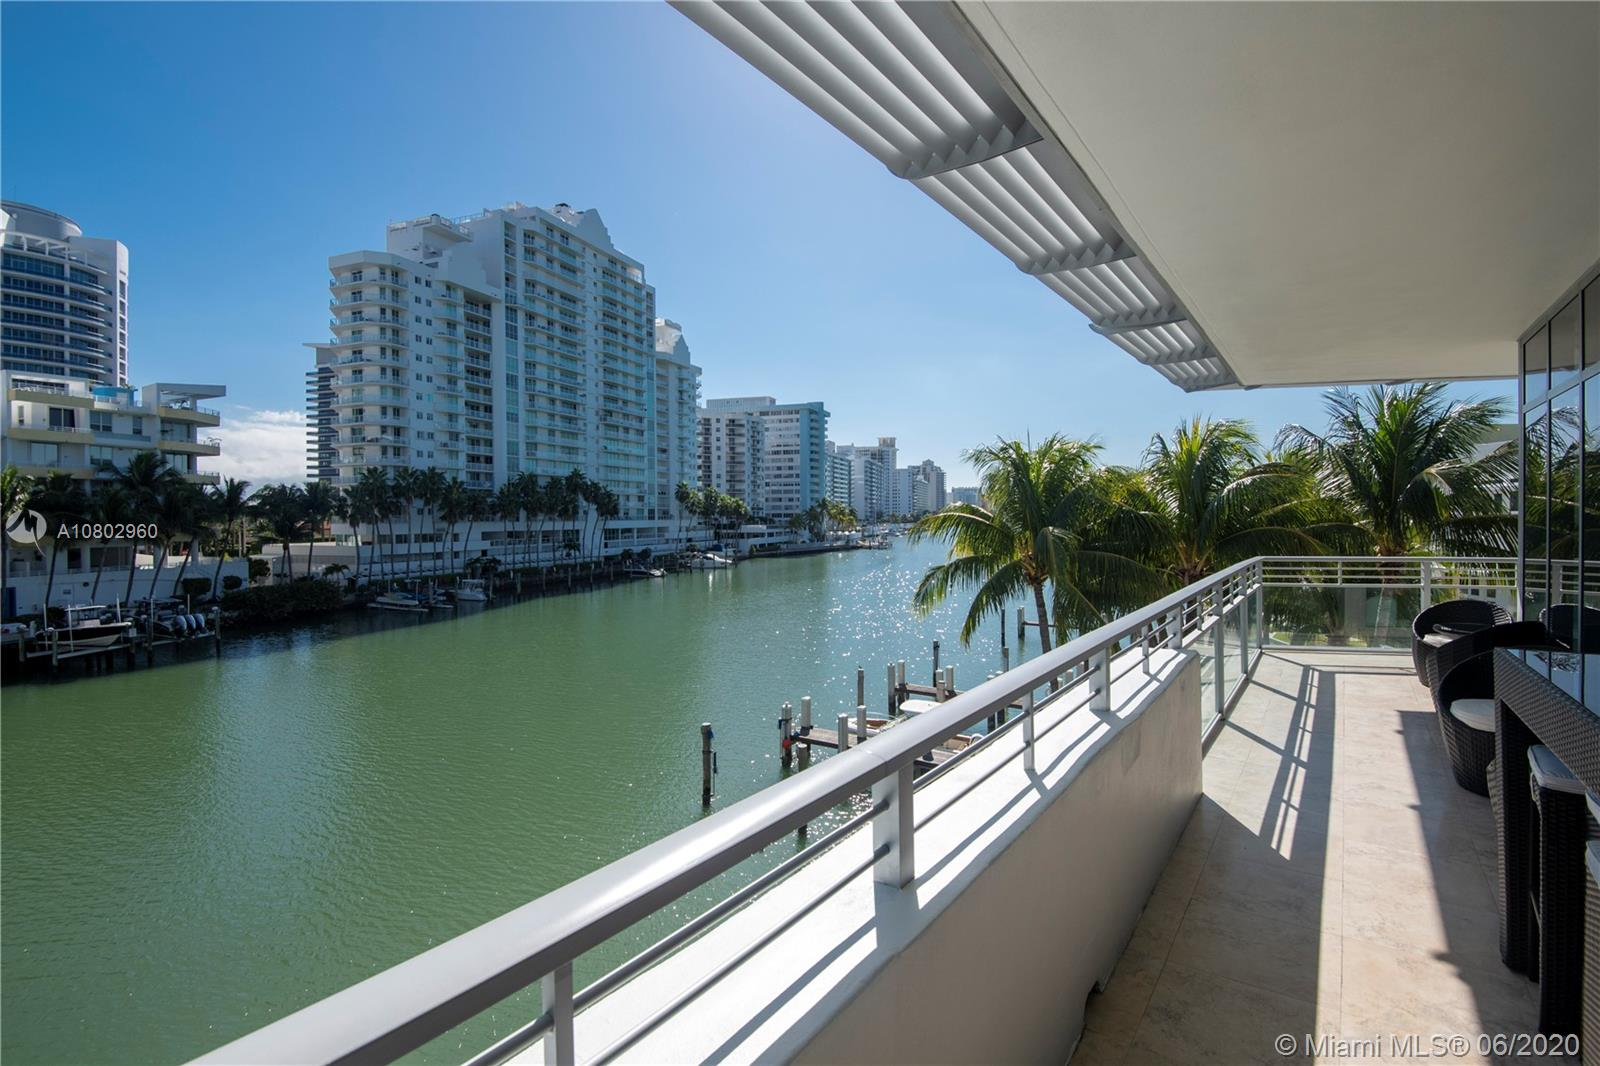 White, Modern, Fresh, Crisp, Clean!  Welcome to Aqua' most sought after 01 line at the Prestigious Gorlin Building.  Known for its 10 ft ceilings with wraparound balconies showcasing gorgeous views of Miami Beach's Intercoastal Waterway, this modern 3 BR 3.5 BA apt delights in every direction. Modern walls of glass encase the sun-drenched spacious living room, while swaying Palm trees & glistening blue-green water provide the exterior backdrop, and Crystal White 24 x 24 Marble floors complete the look. Enjoy a large open Bulthaup kitchen with extensive grey/white marbled countertops, high-end appliances, Carrera marble bathrooms, white vanities, a jetted tub & custom closets. Aqua is a private 8.5 acre island community w/24 hr guard gated security, 2 pools & a state of the art gym/spa.